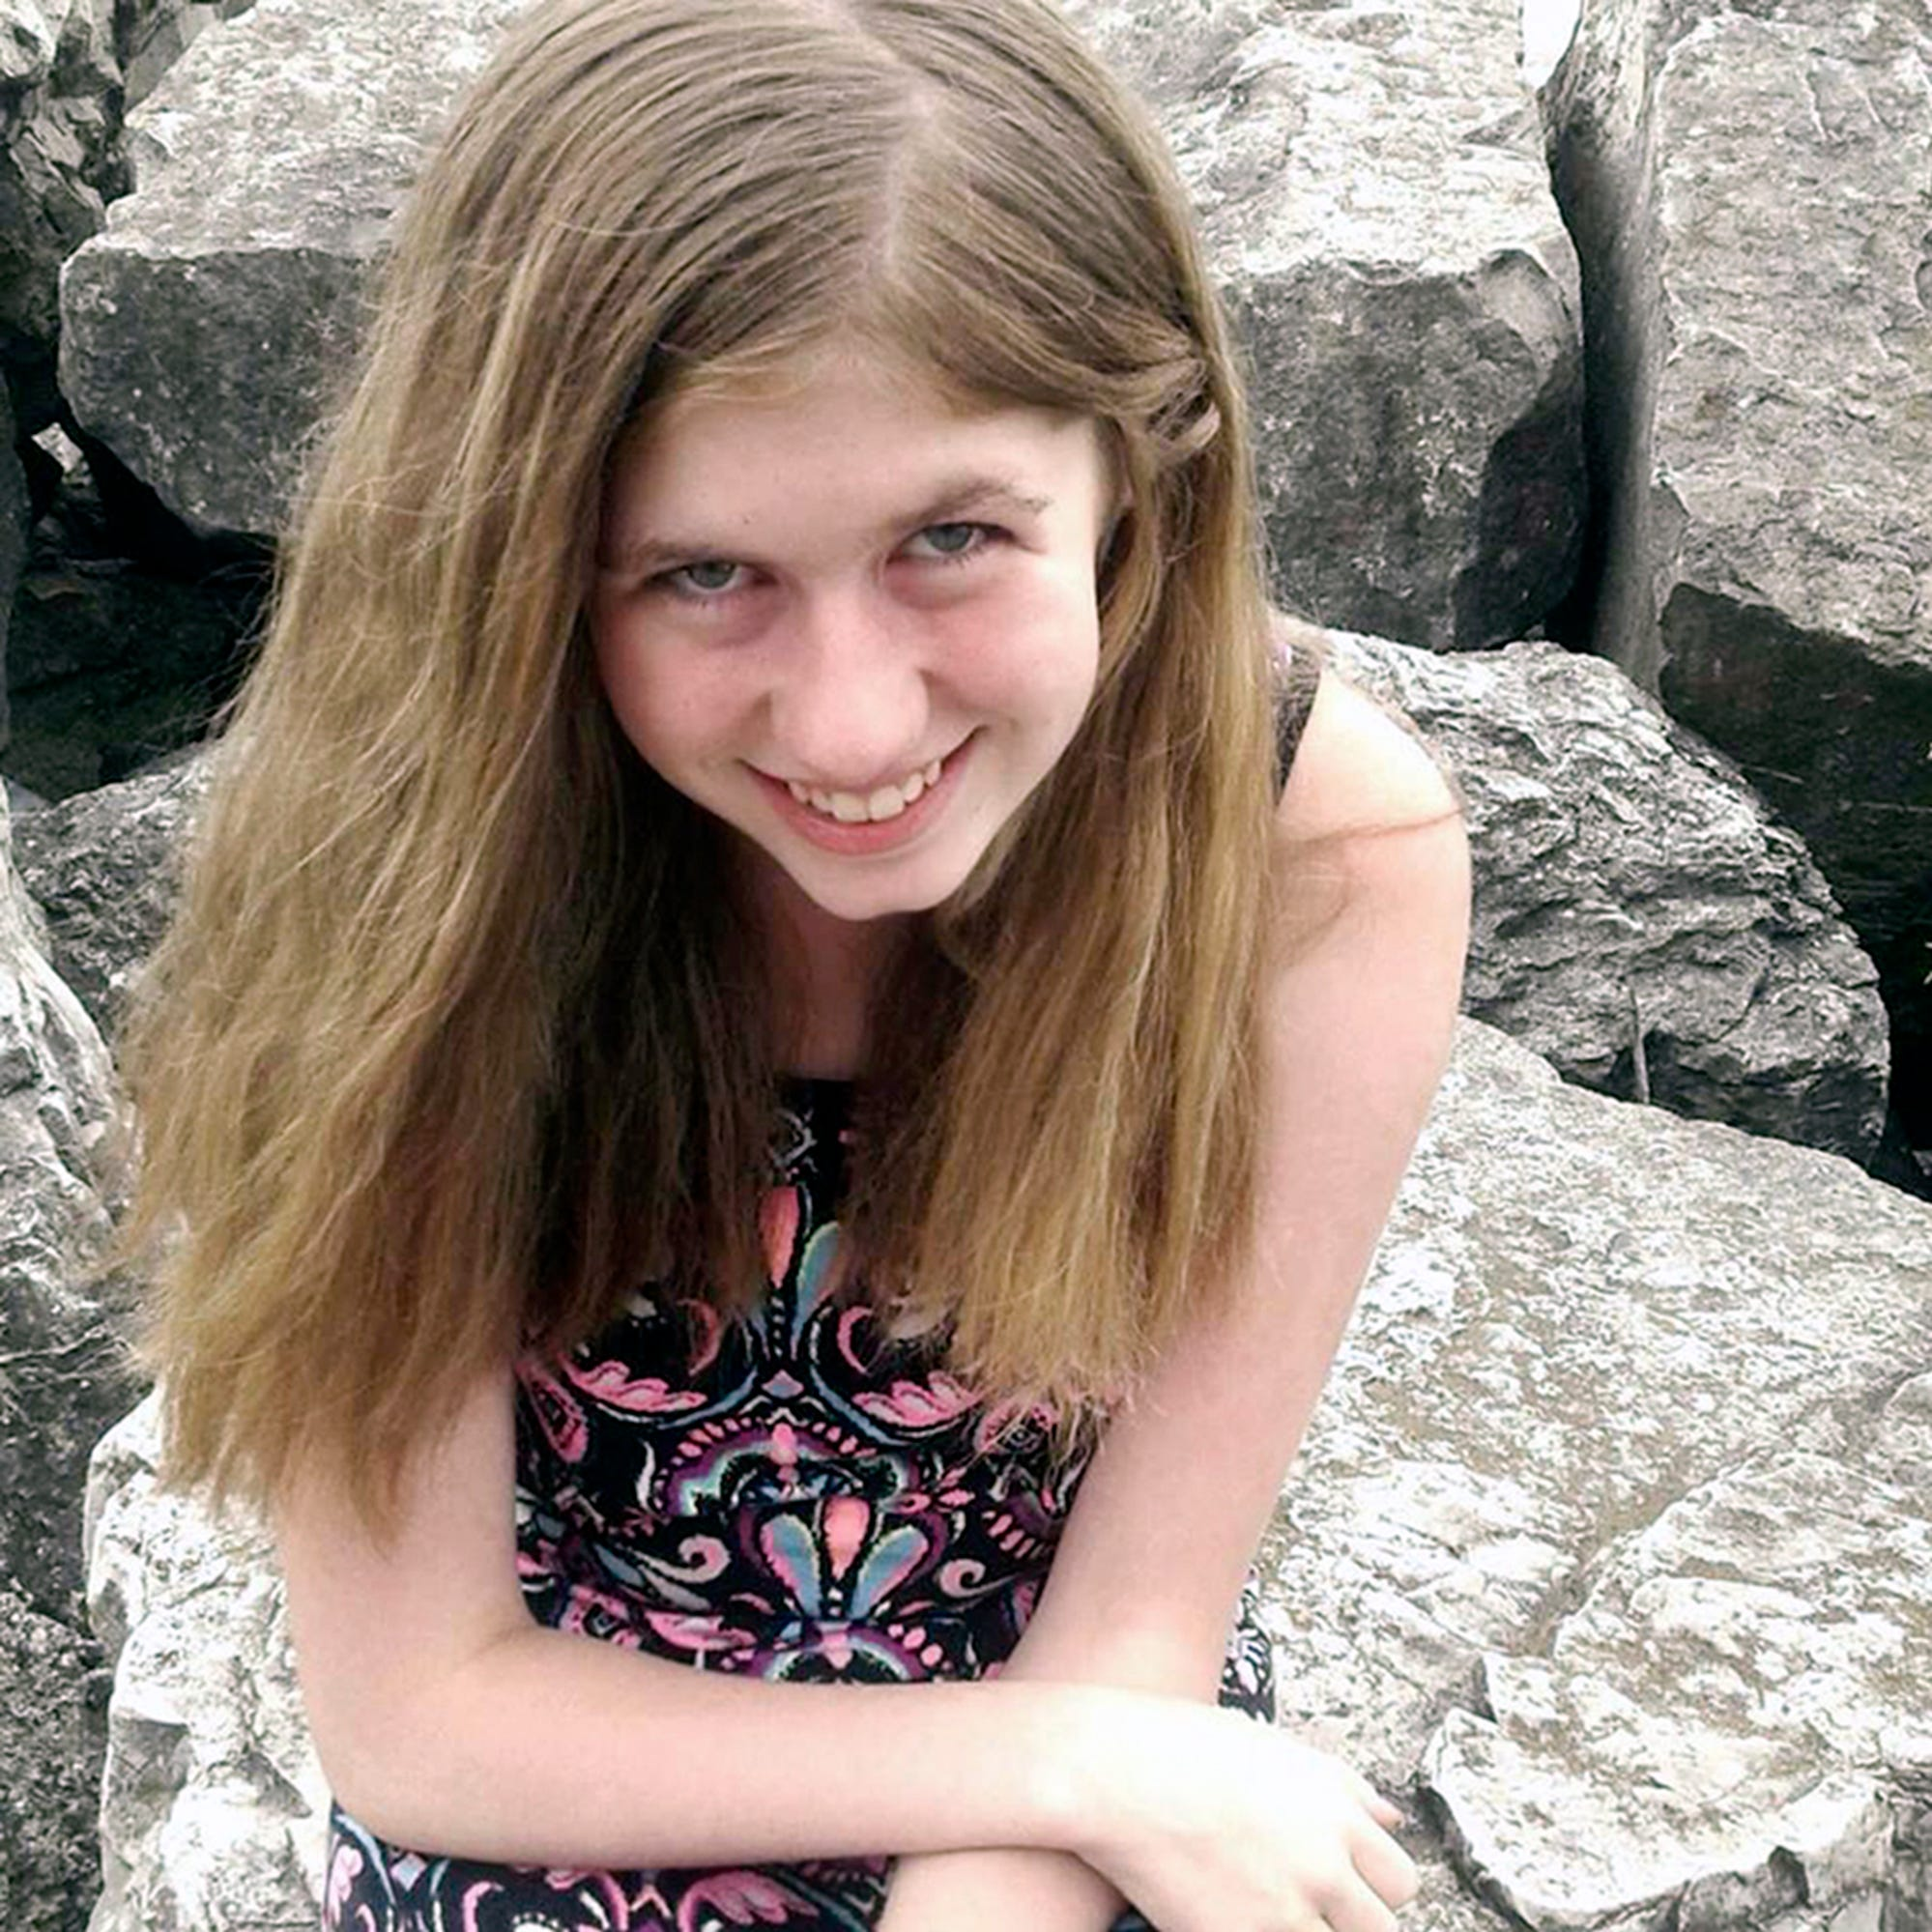 Wisconsin girl missing after parents found dead in home, police say